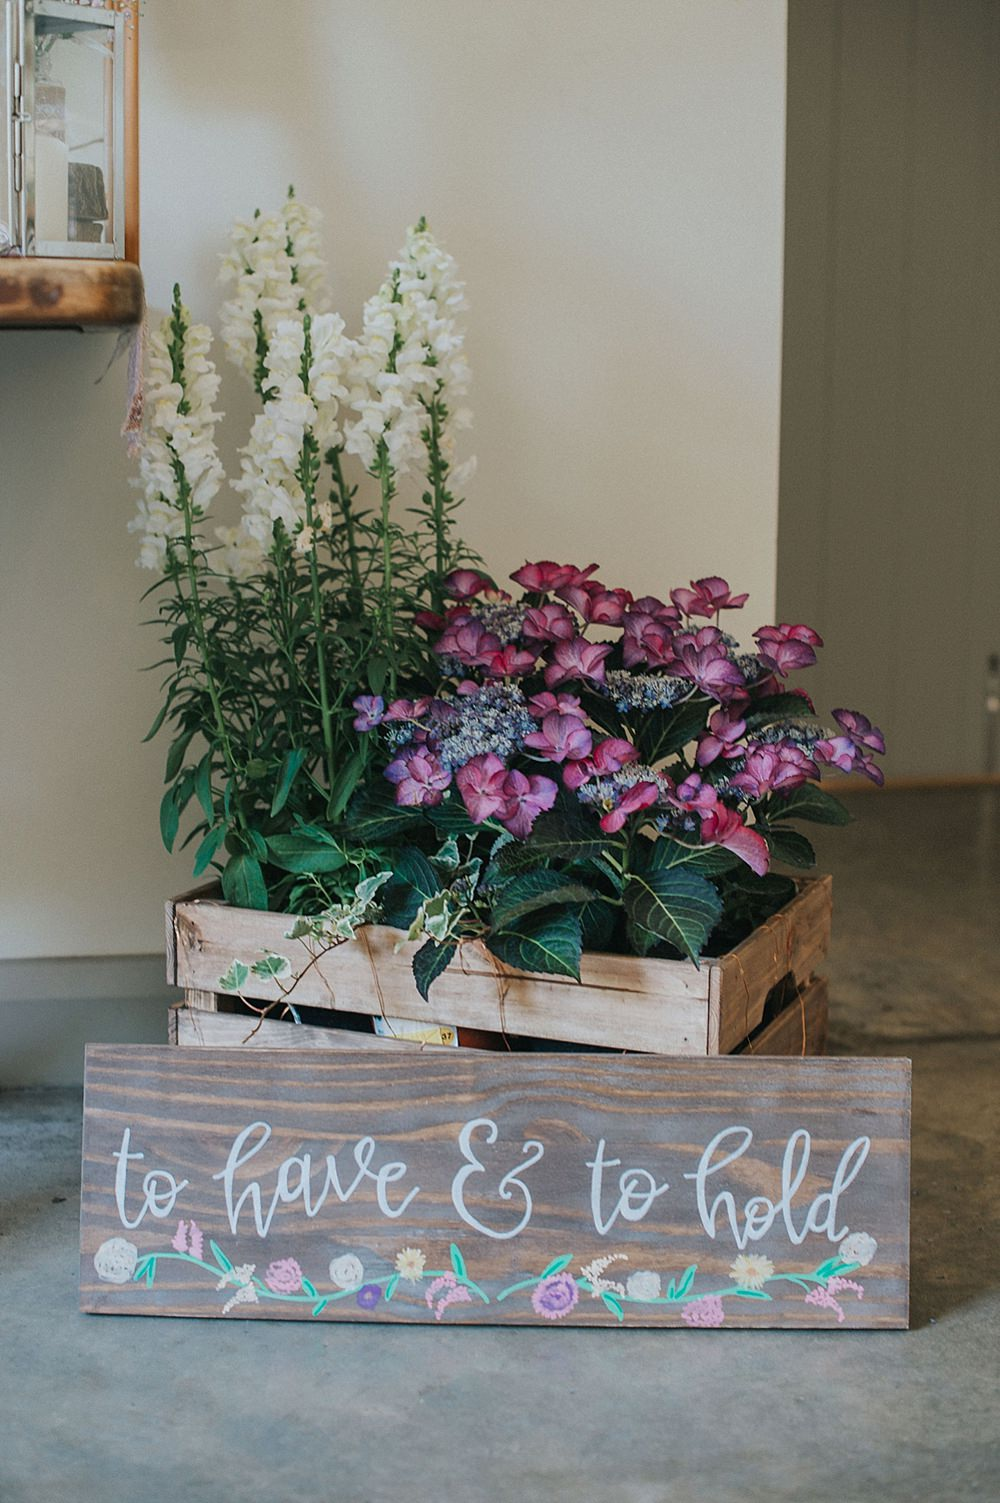 Wooden Crate Flowers Sign Signage Houchins Farm Wedding Julia and You Photography